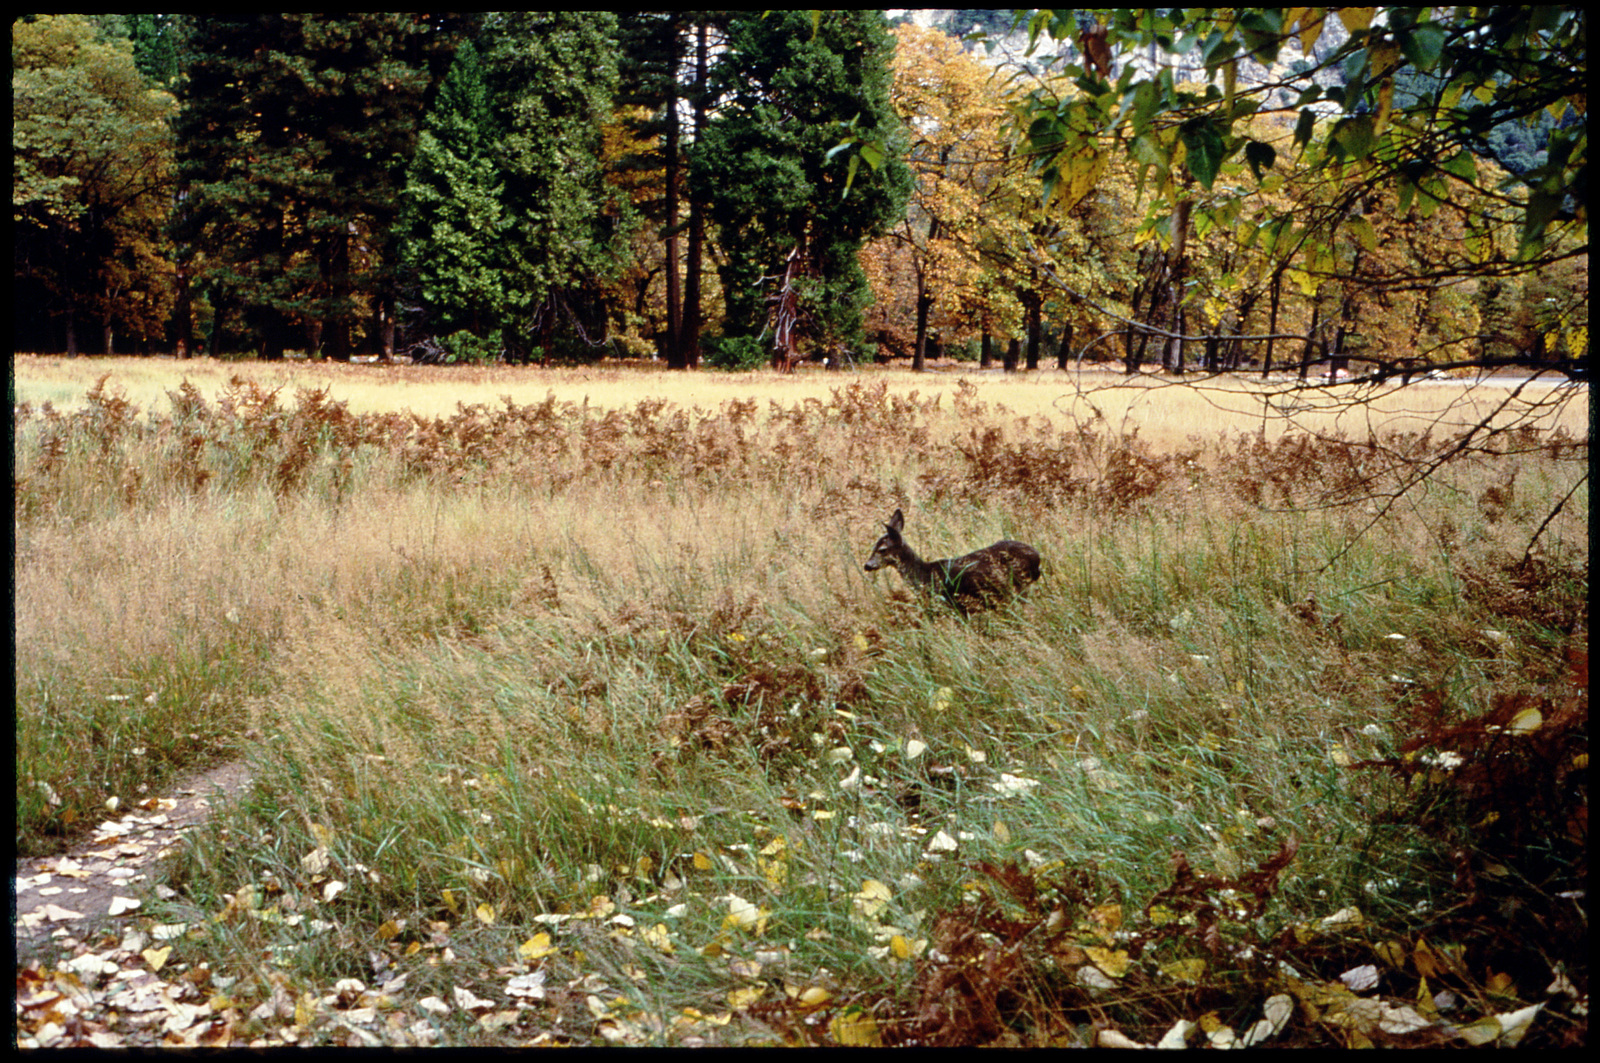 Library of Environmental Images, Office of Research and Development (ORD), September 1996 - Scenic/General - Deer in autumn meadow